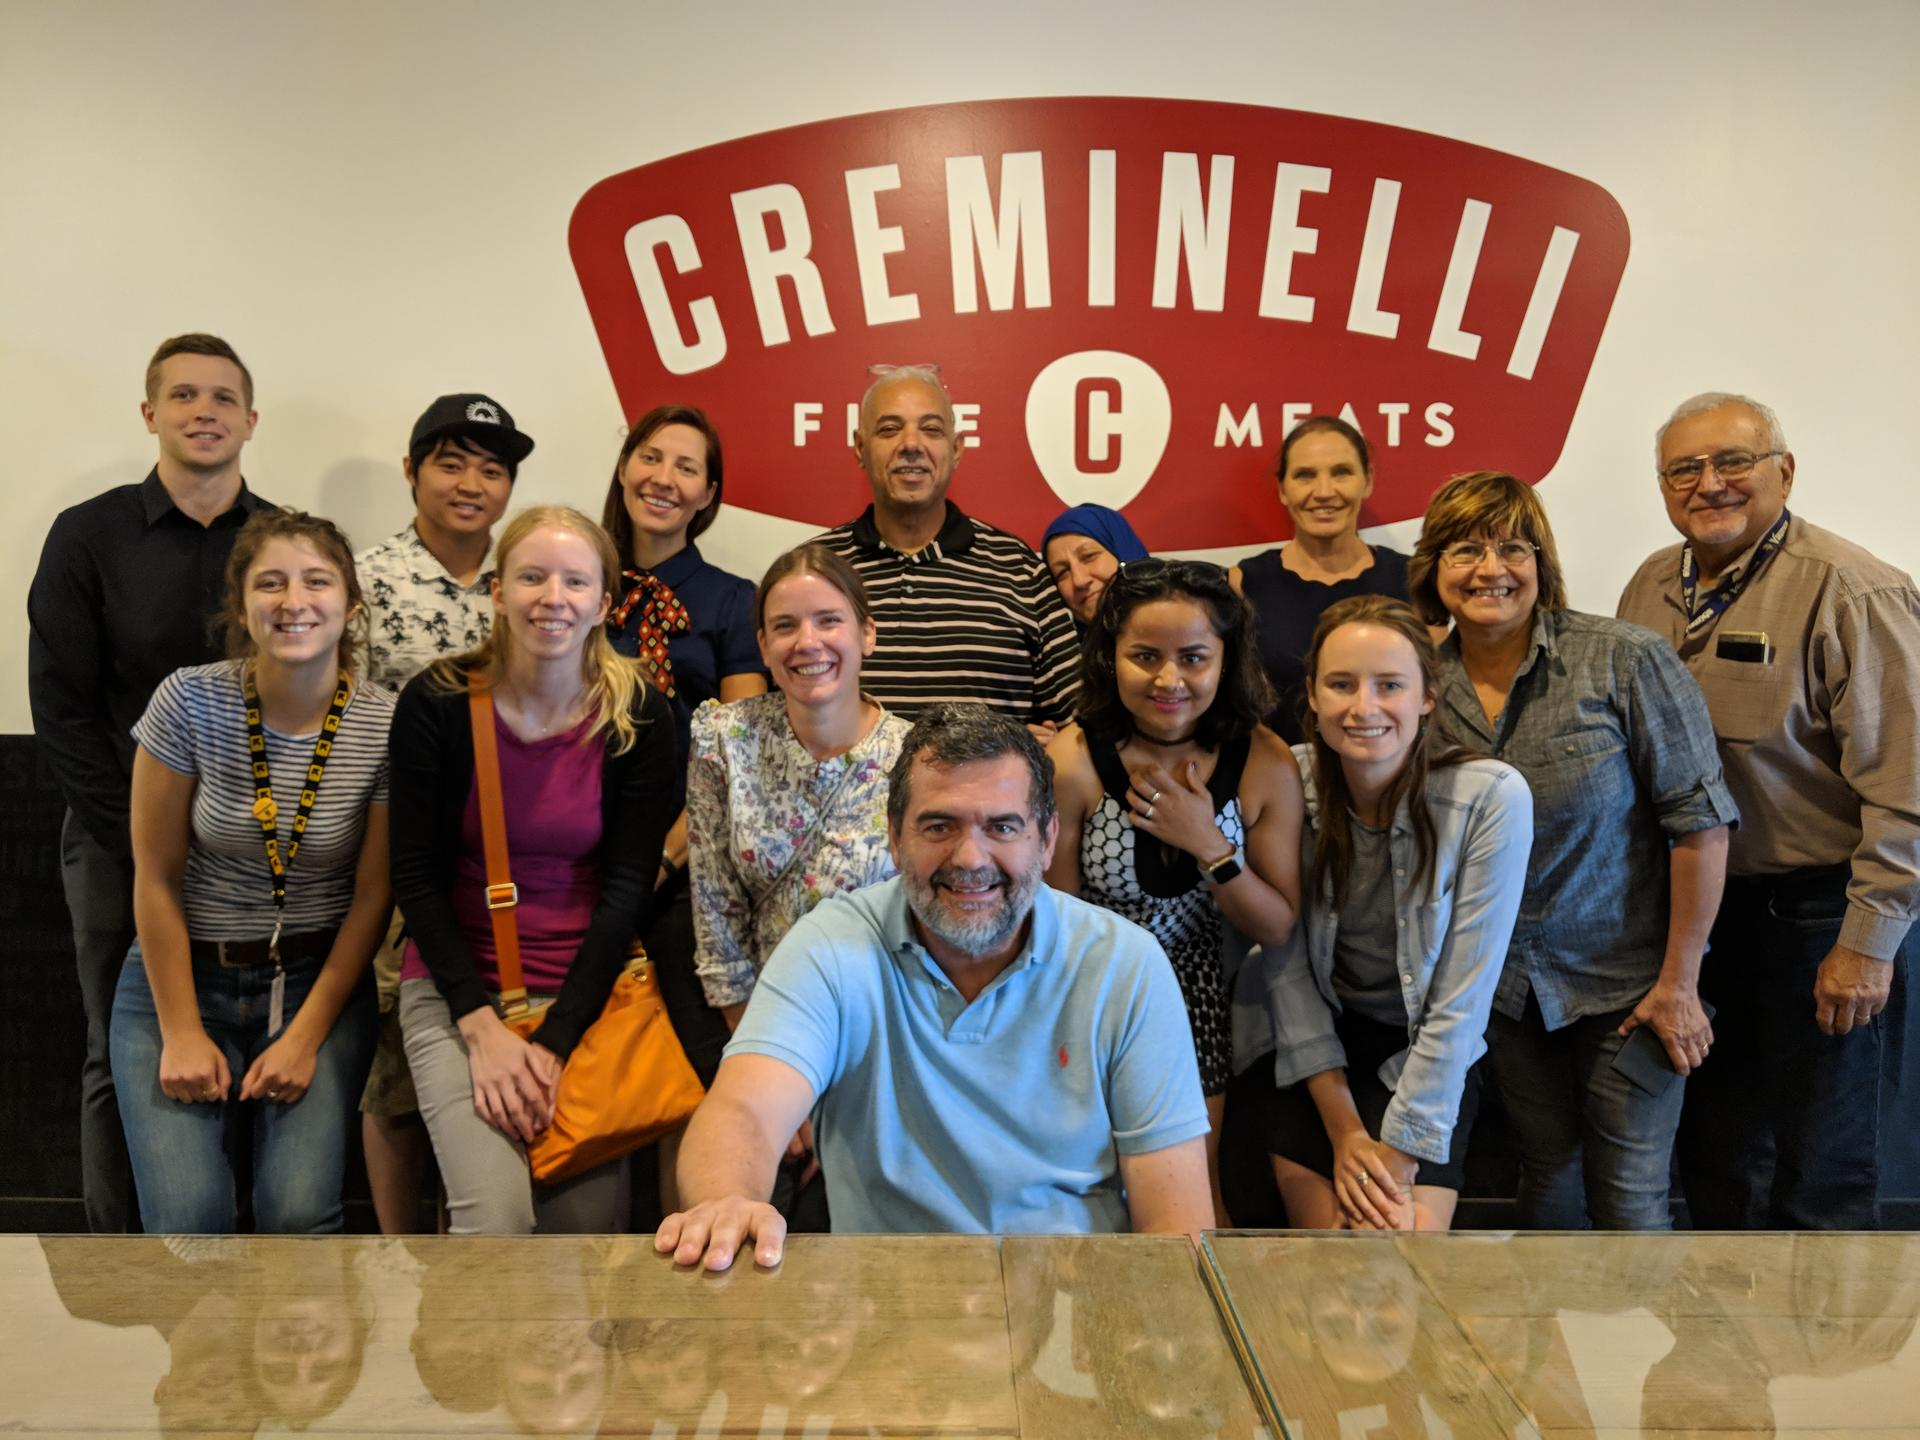 Spice entrepreneurs and staff participated in engaging in workshops tailored to the needs of refugee and new American entrepreneurs. Creminelli Fine Meats works to ensure refugees are not only welcome but also successful in our community.  Photo: Jackie Rodabaugh/IRC